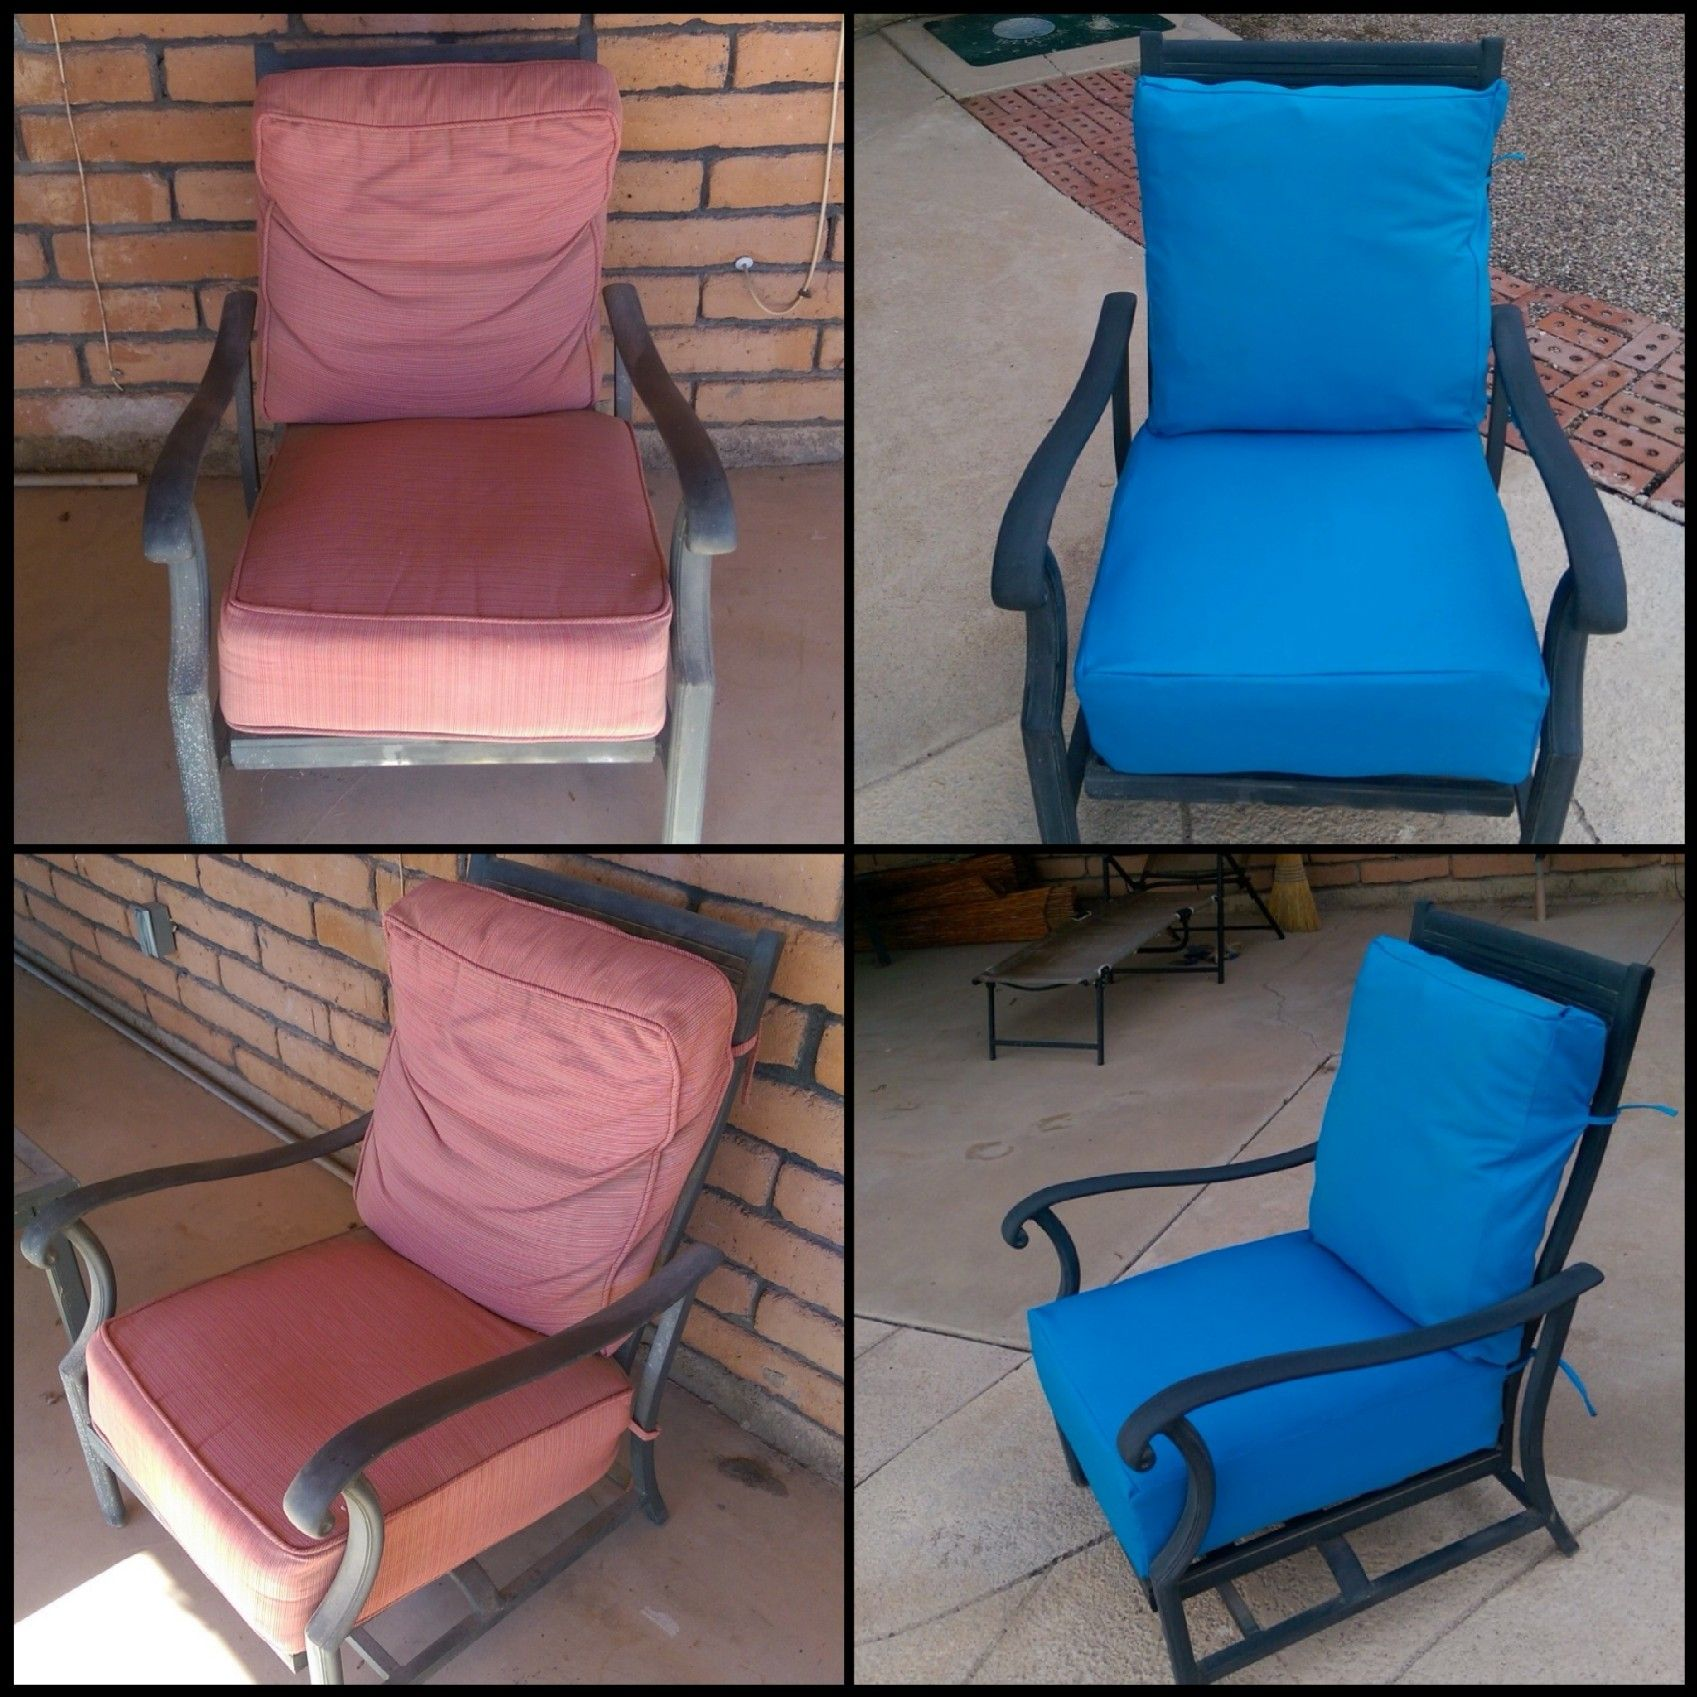 Reupholstered patio cushion covers with Velcro enclosures